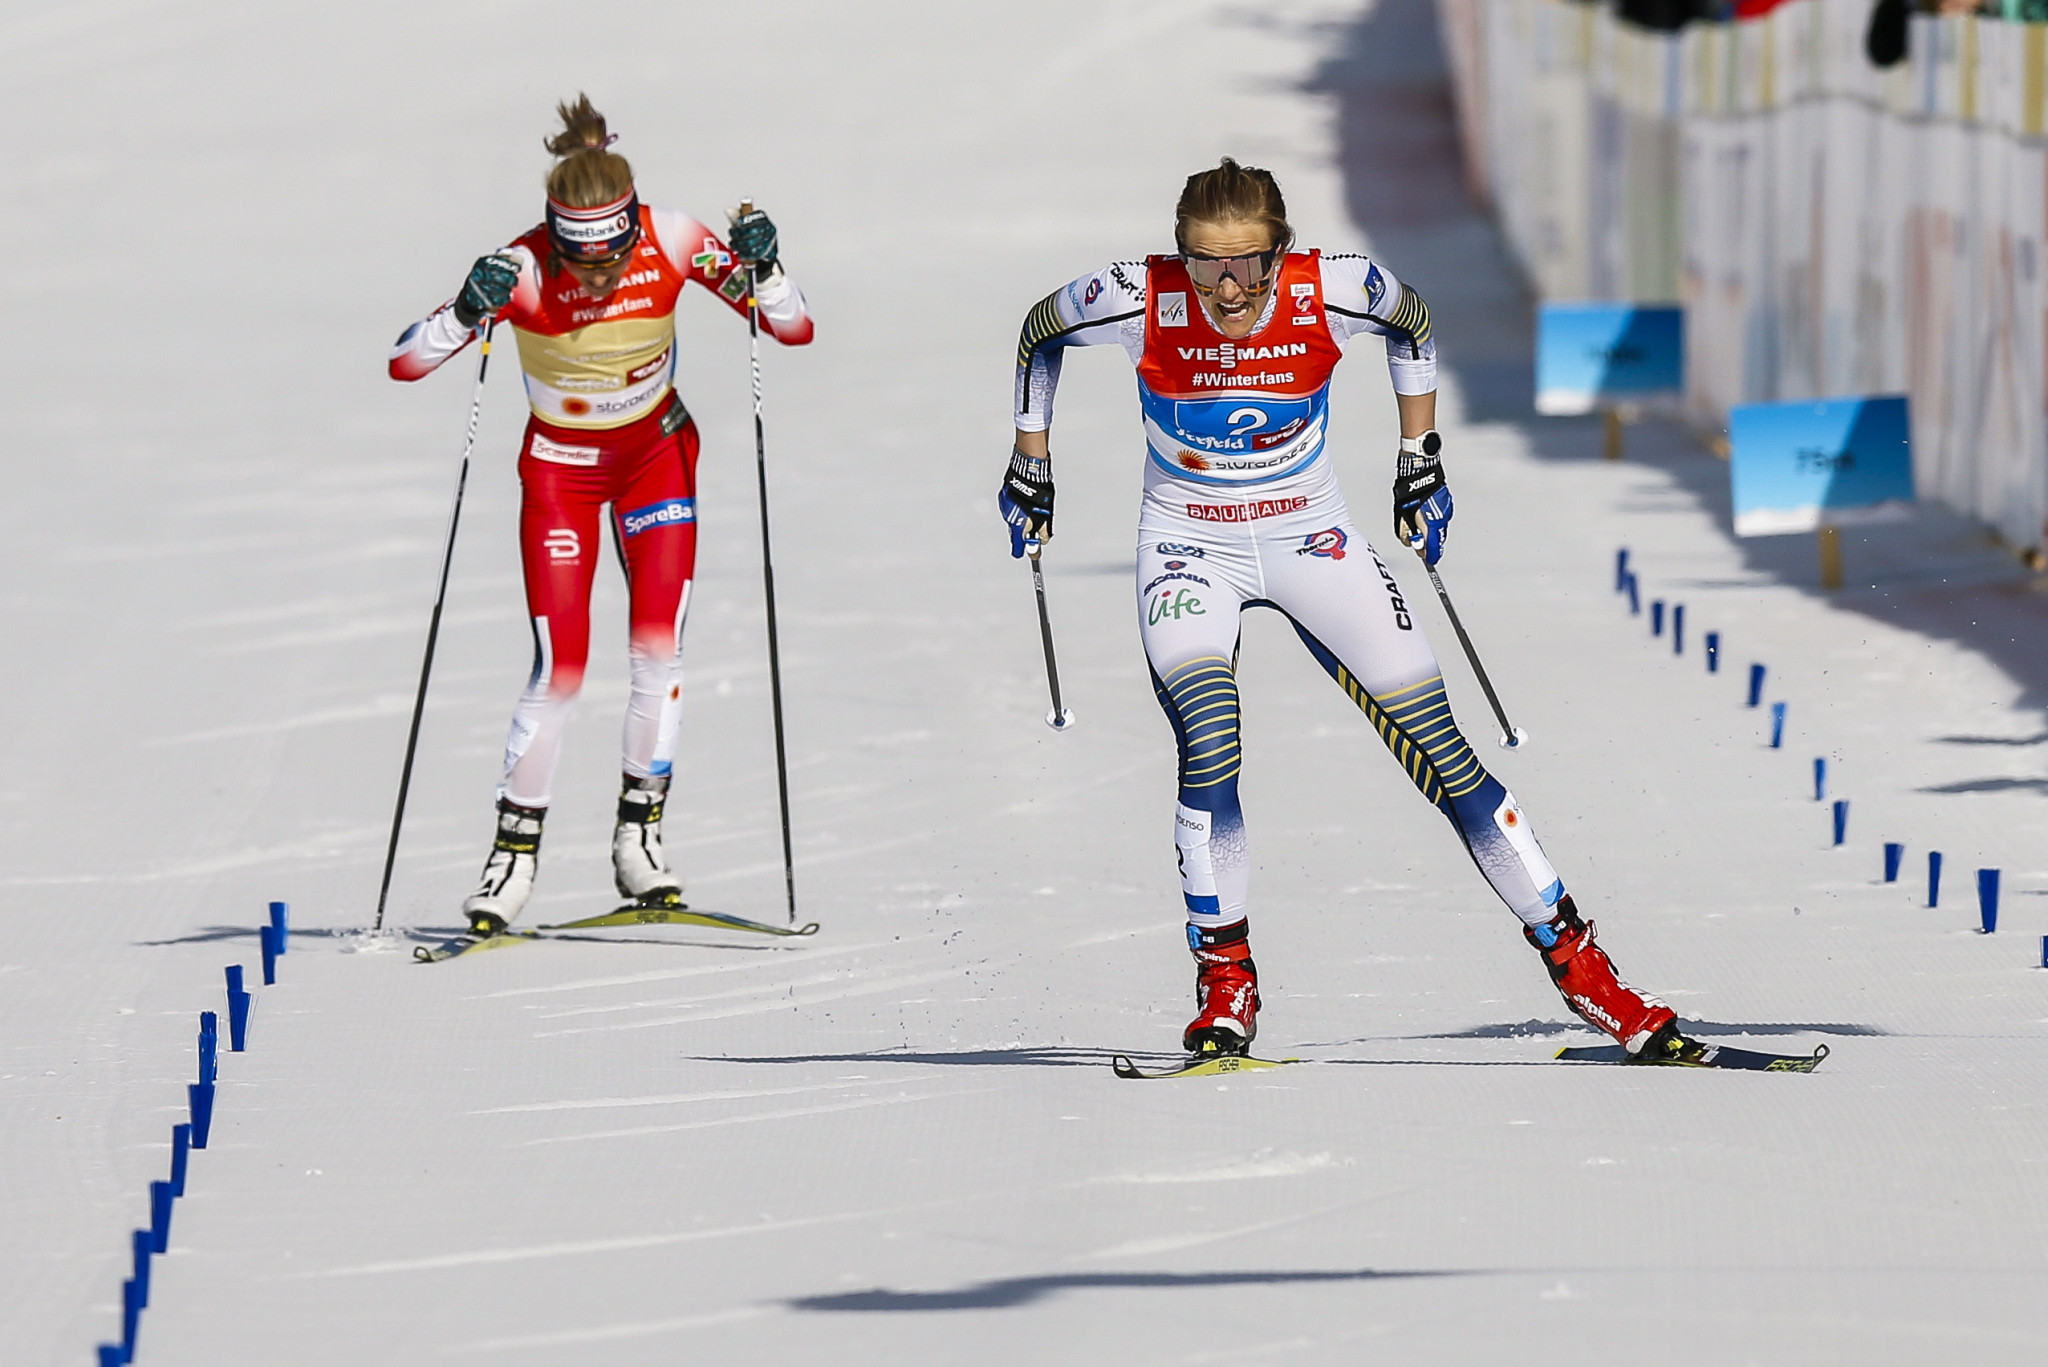 Stina Nilsson outfought Therese Johaug to win cross-country relay gold for Sweden ©Getty Images